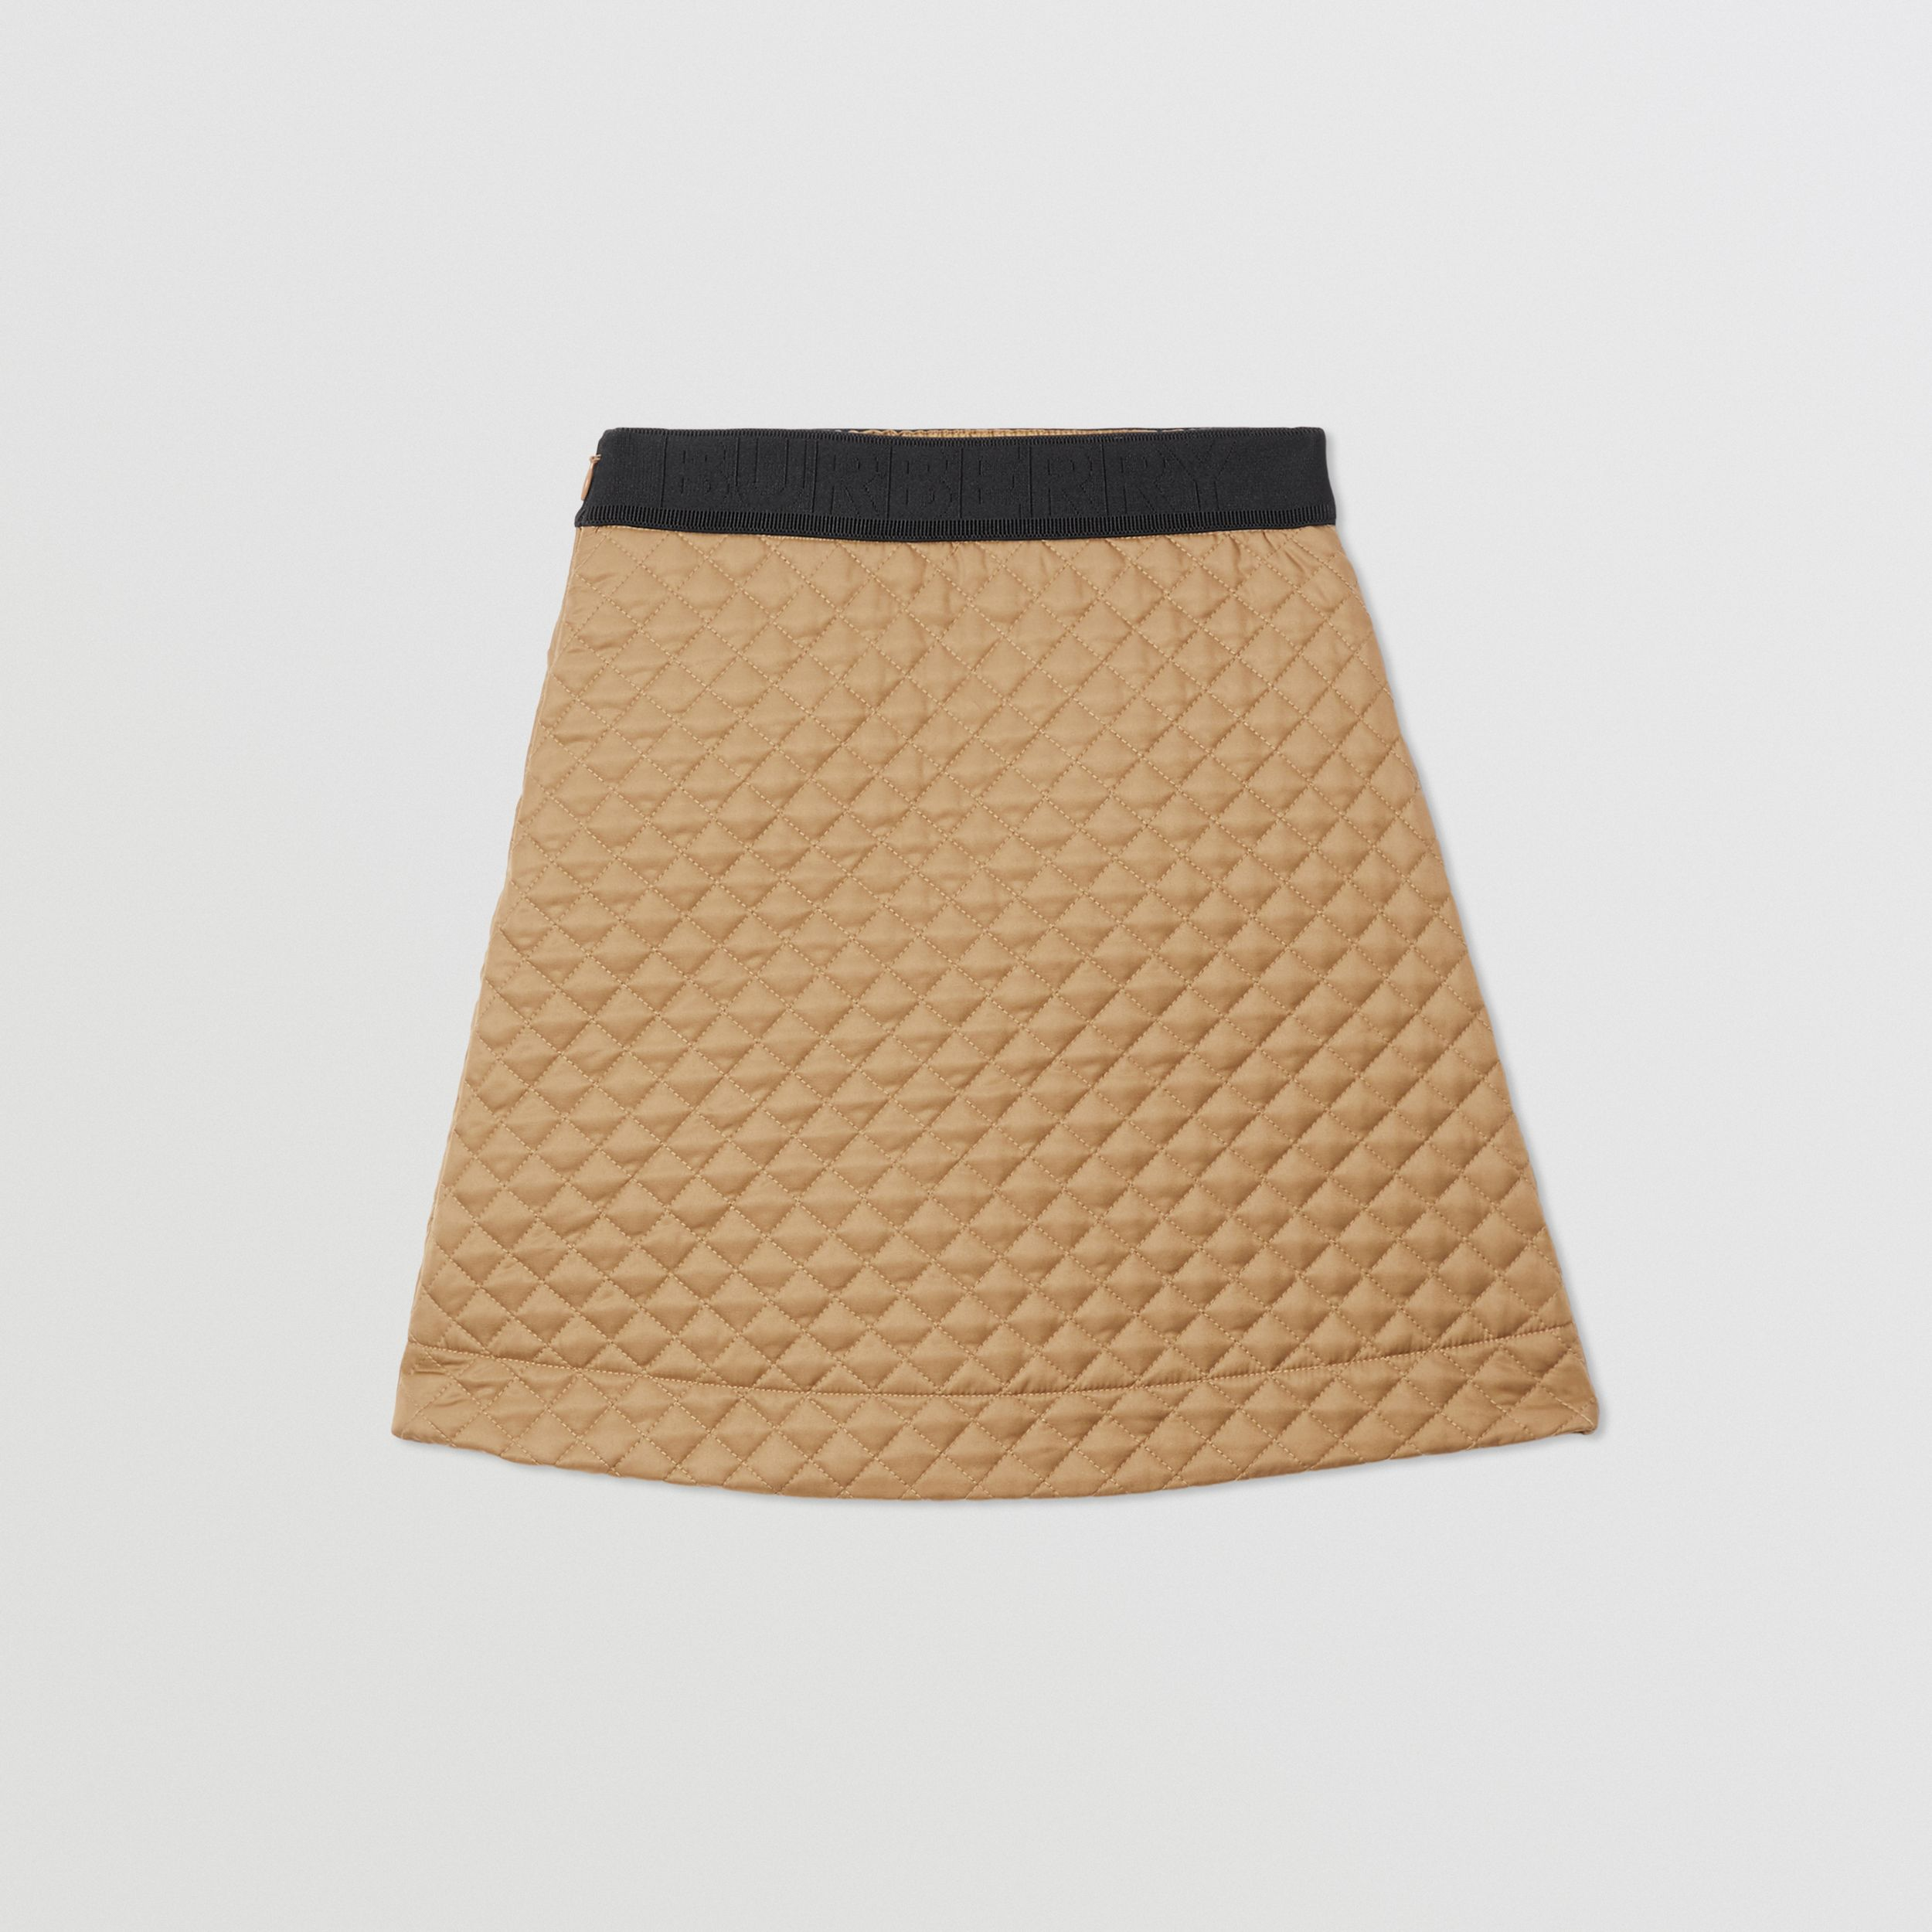 Monogram Quilted Panel Recycled Polyester Skirt in Honey | Burberry - 4